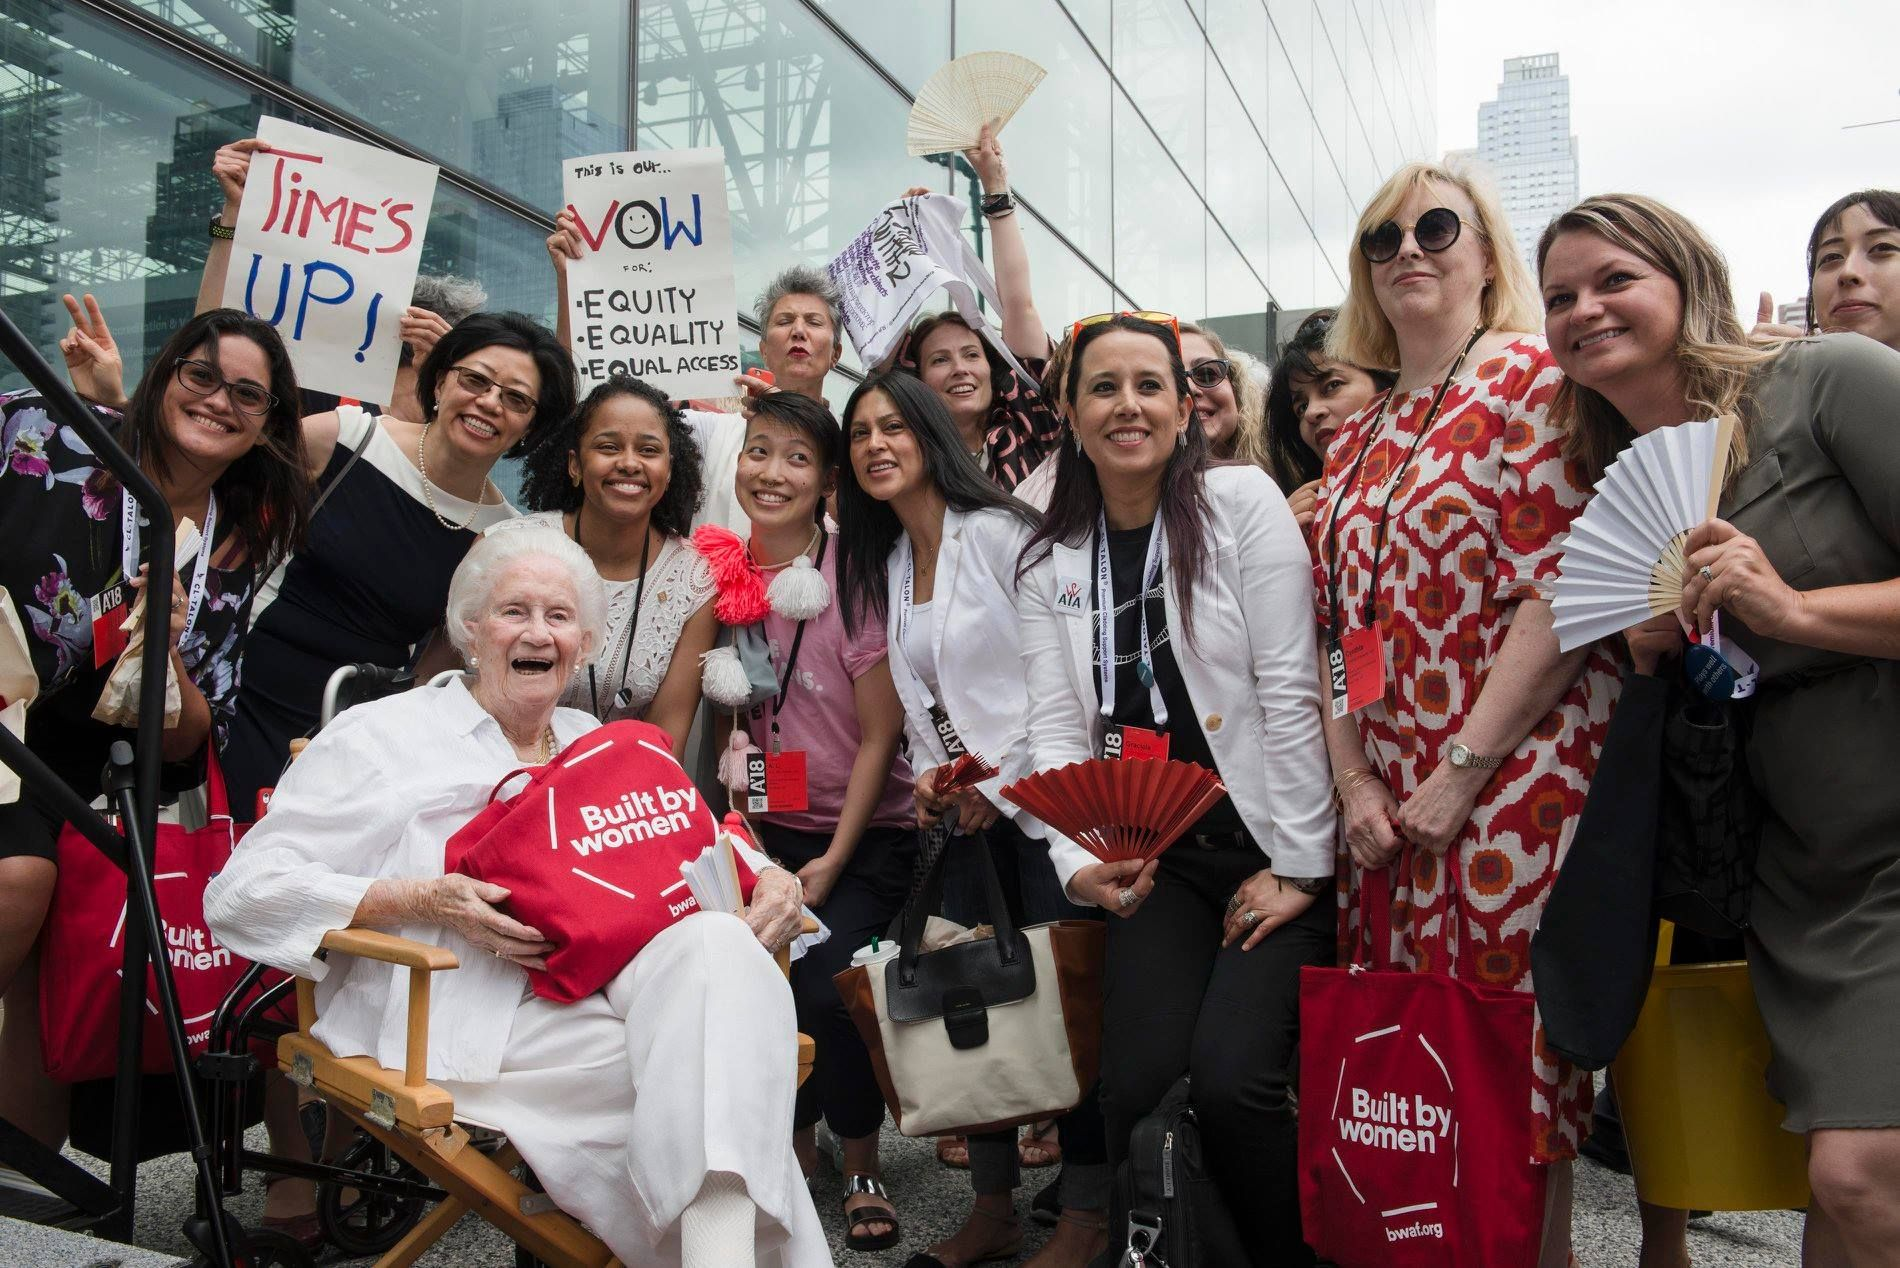 Founder Beverly Willis and Executive Director Cynthia Phifer Kracauer in a Time's Up Flash Mob, 2018